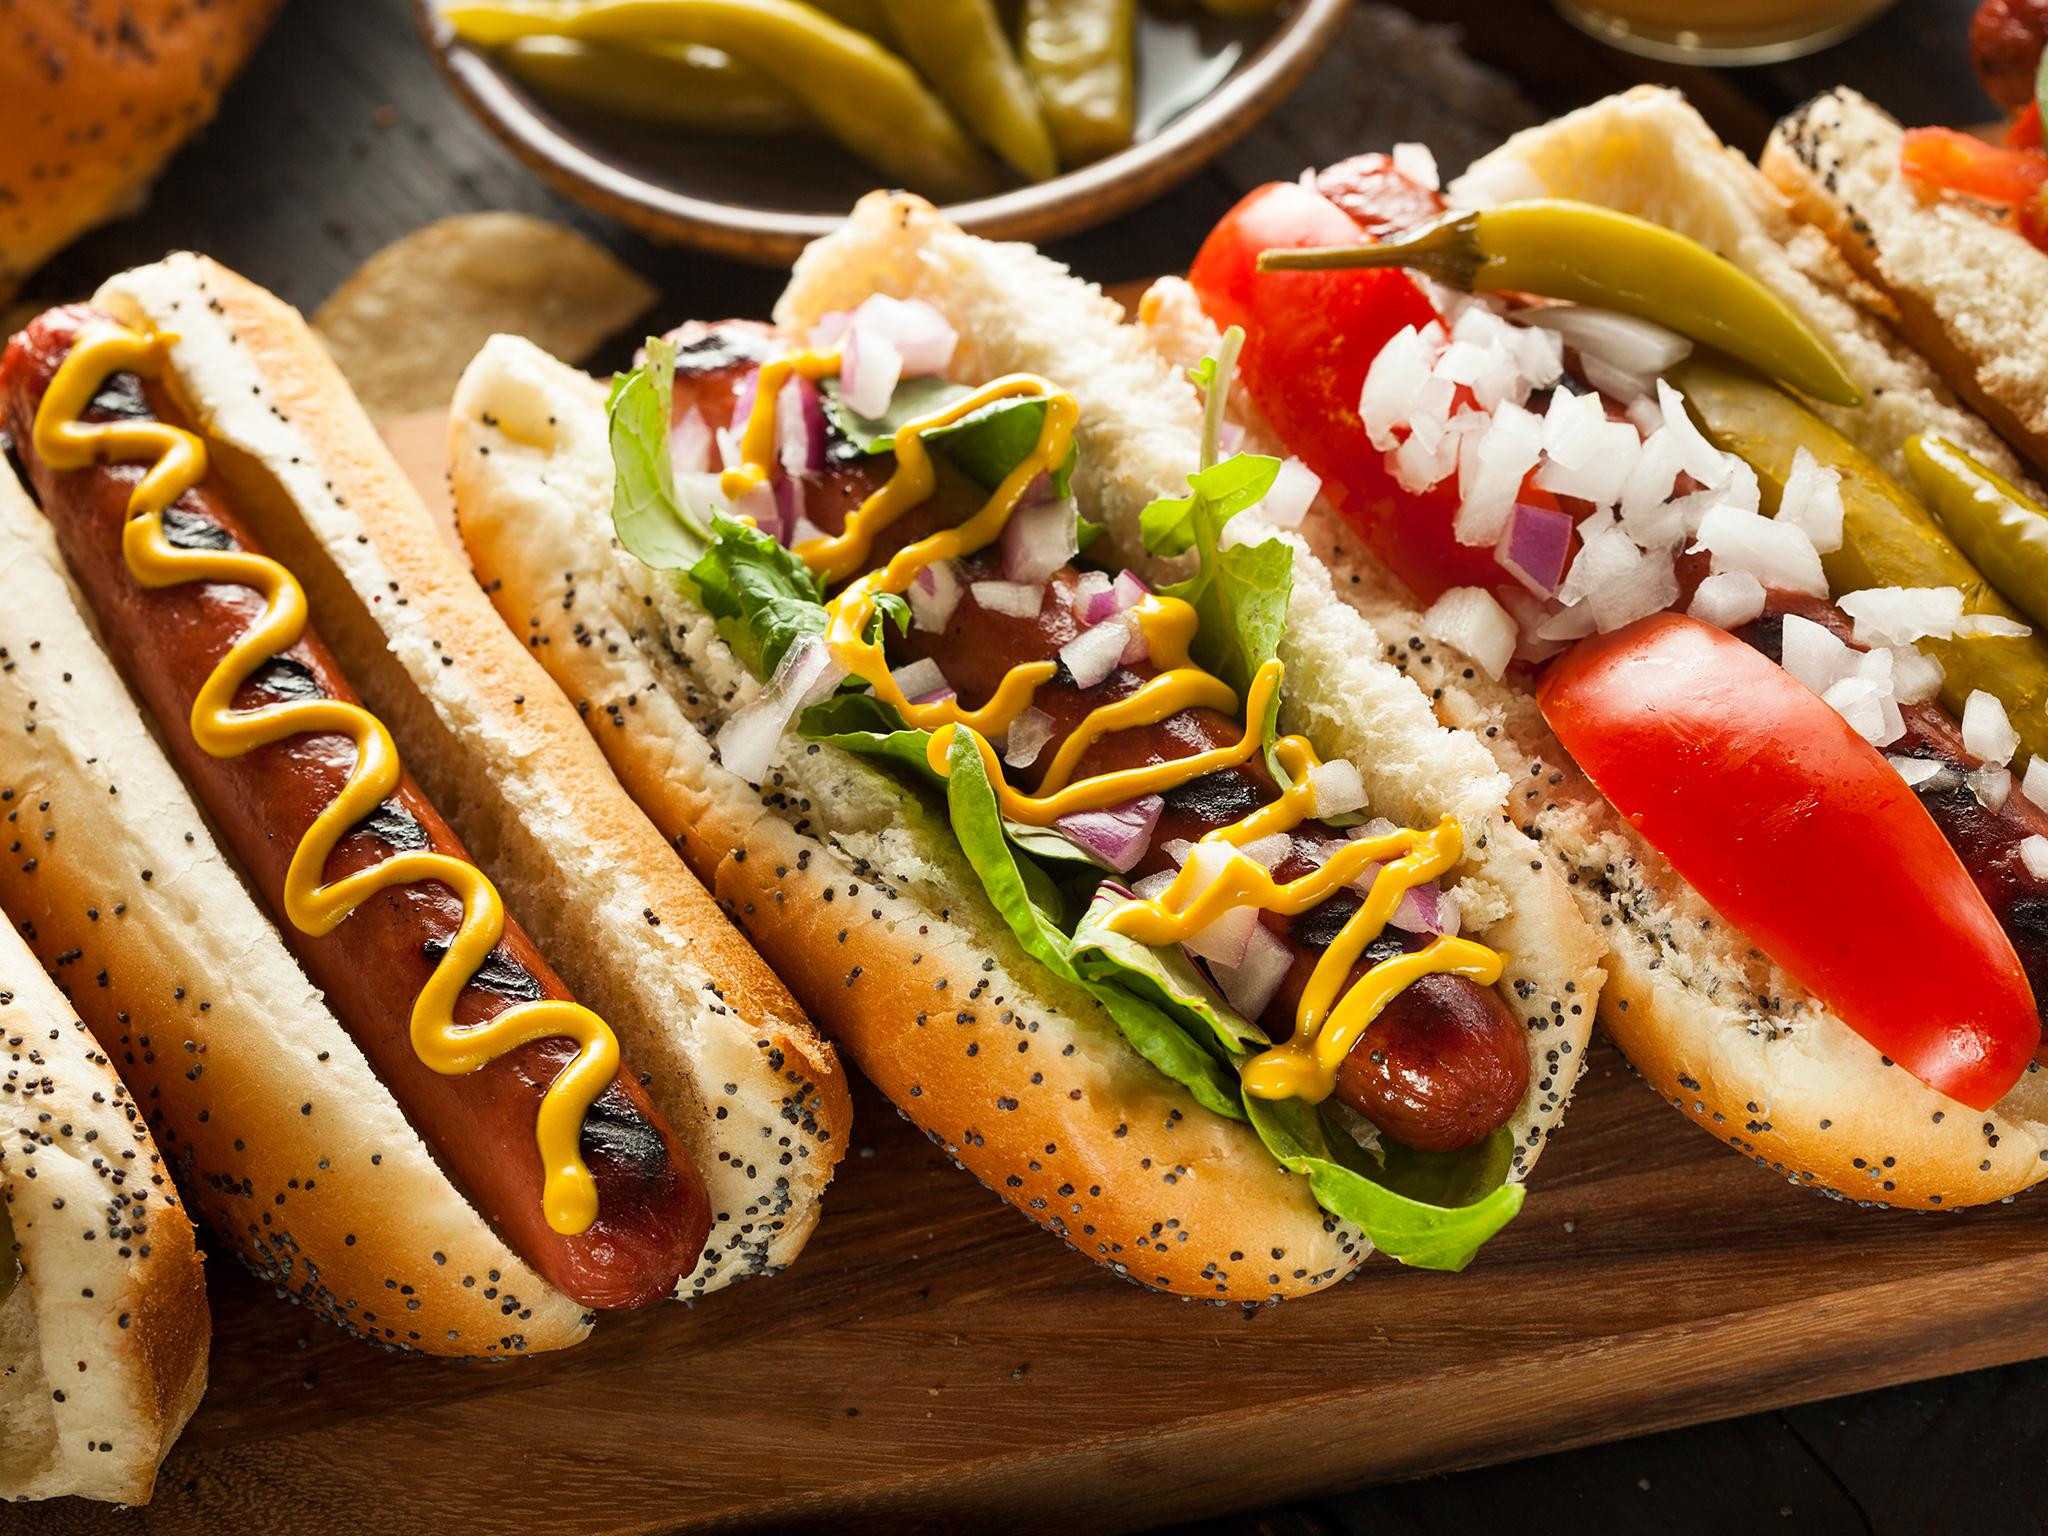 How Unhealthy Are Hot Dogs  Food discoveries How was the hot dog sandwich and